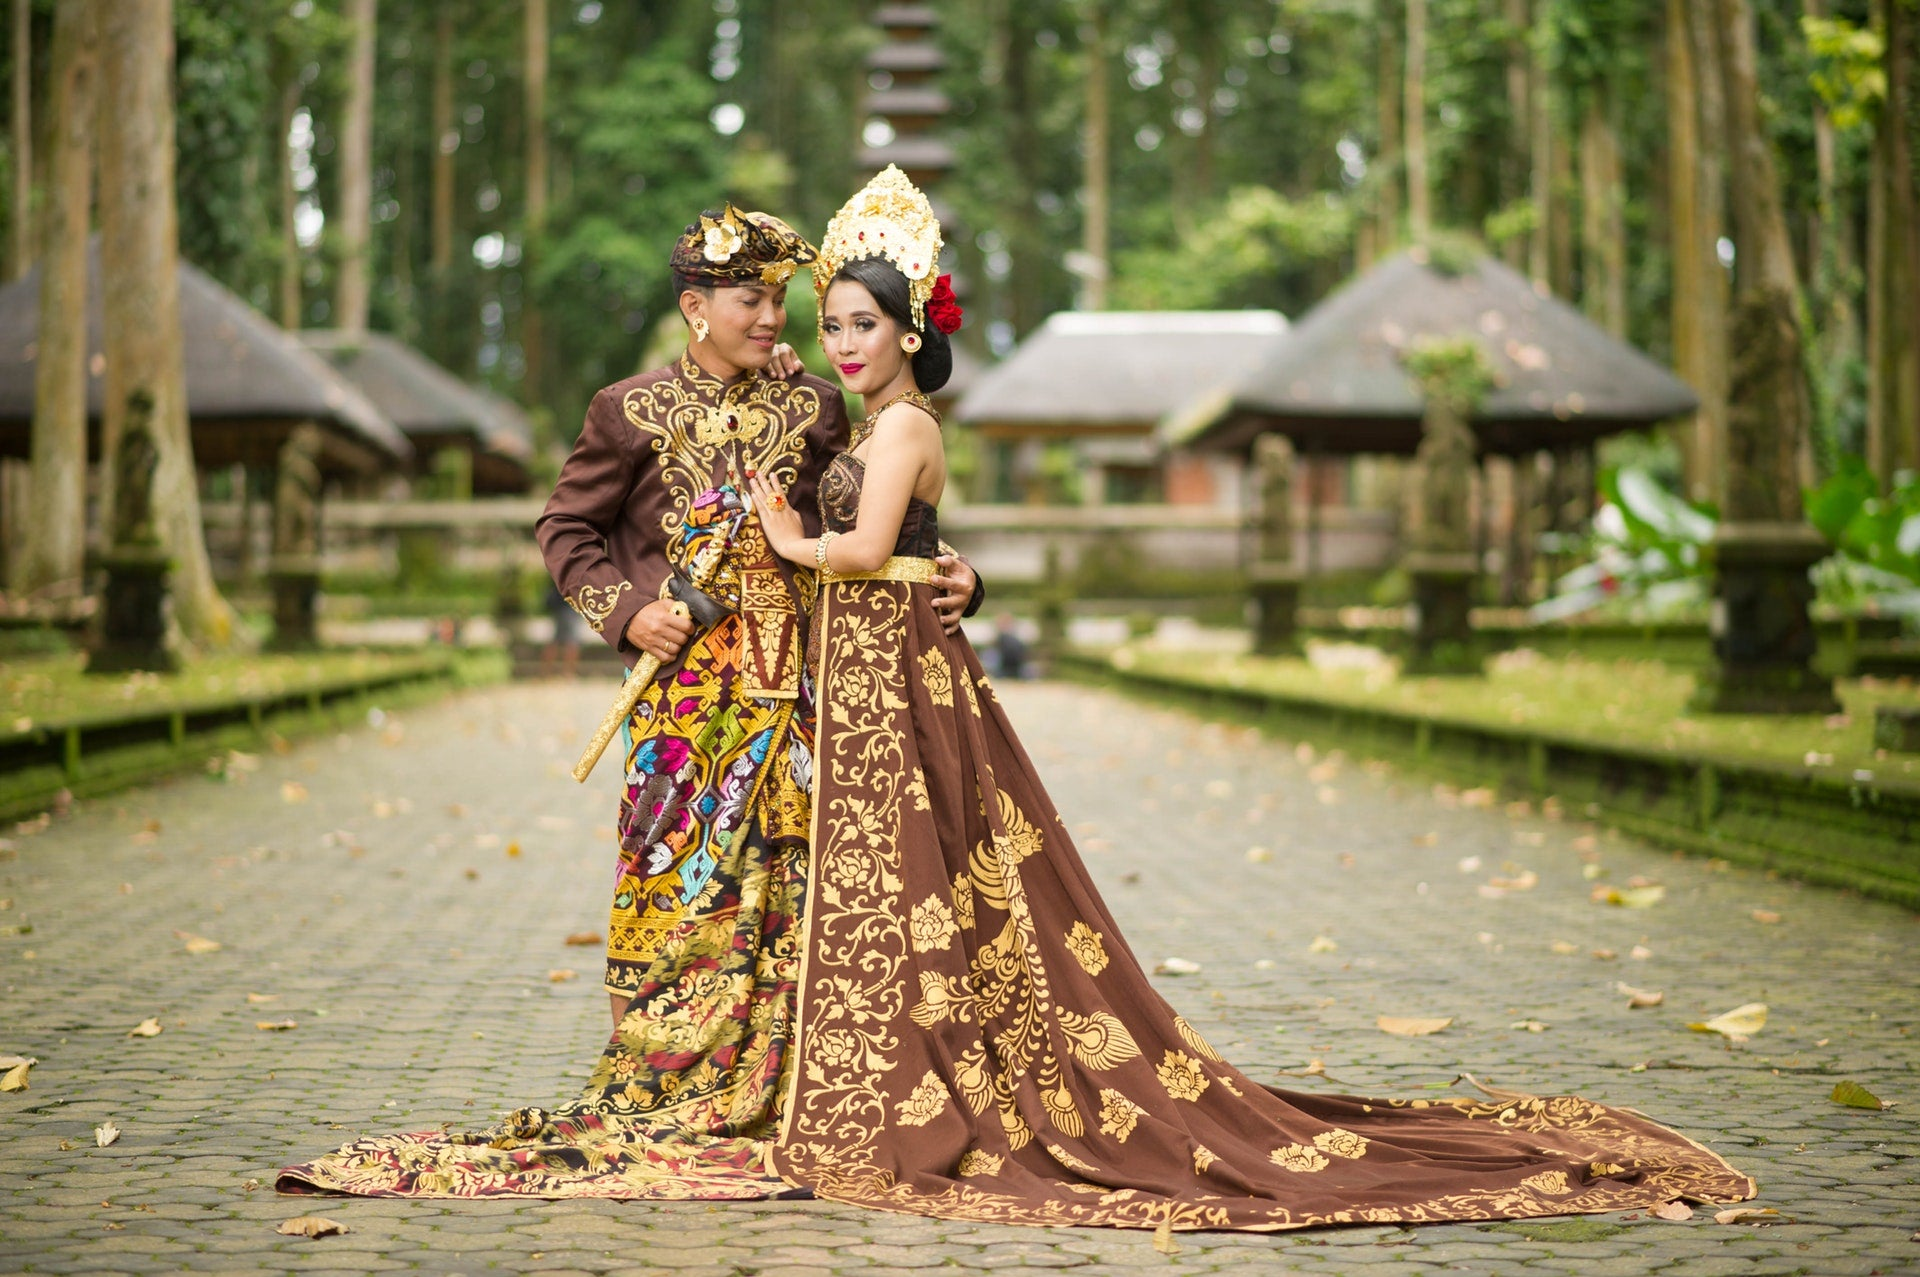 Traditional Balinese Bridal Outfit | Britten Weddings | Photo by I Gede Karsa from Pexels